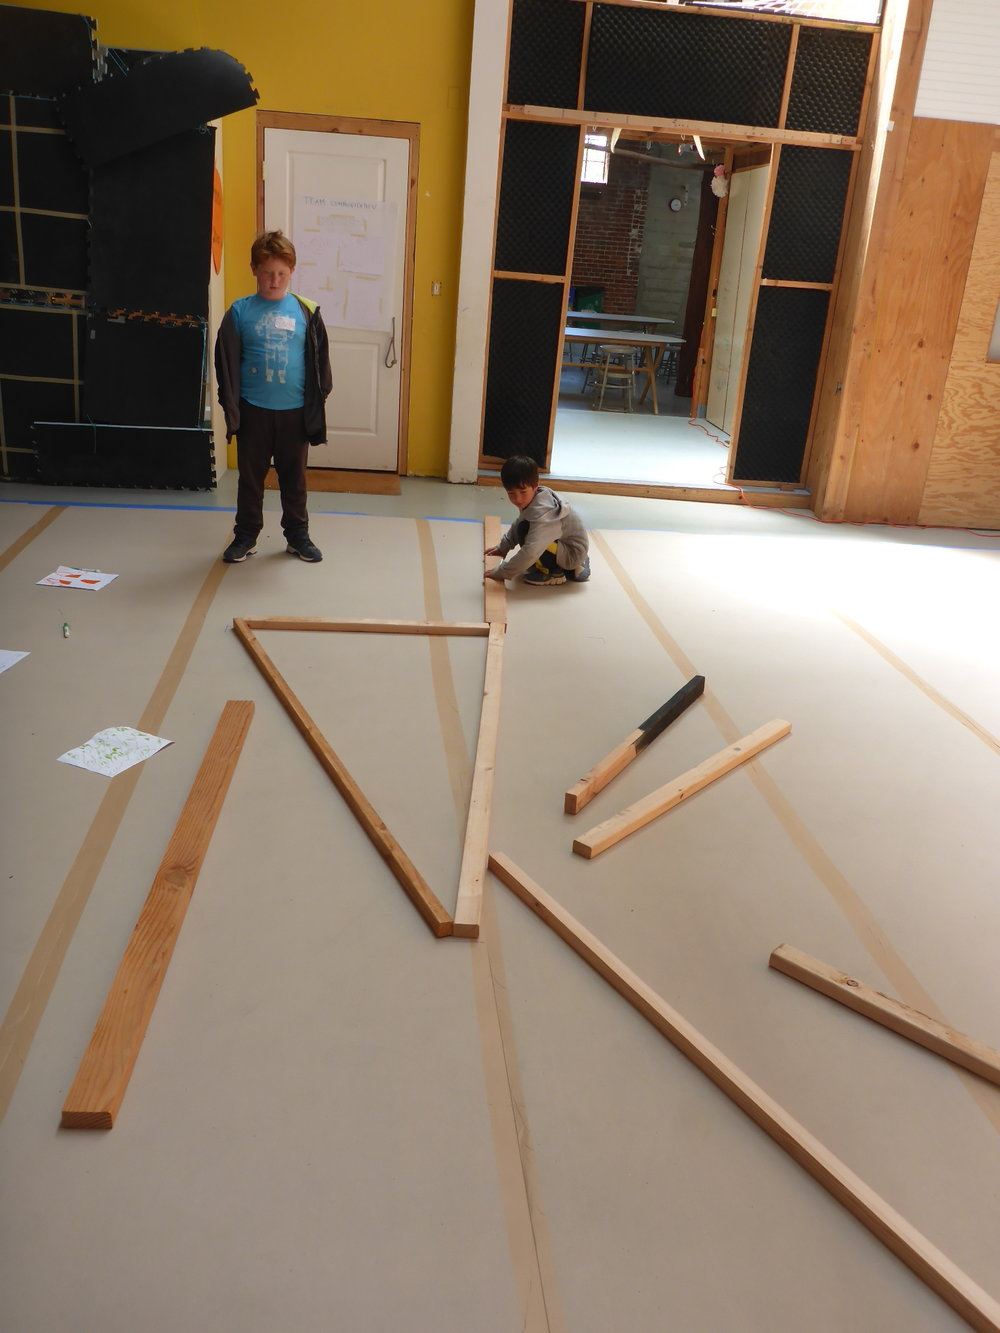 Over on the head team, Bennett and Owen laid out their pieces of wood on the floor so they could get an idea of the scale and shape of their part of the insect.